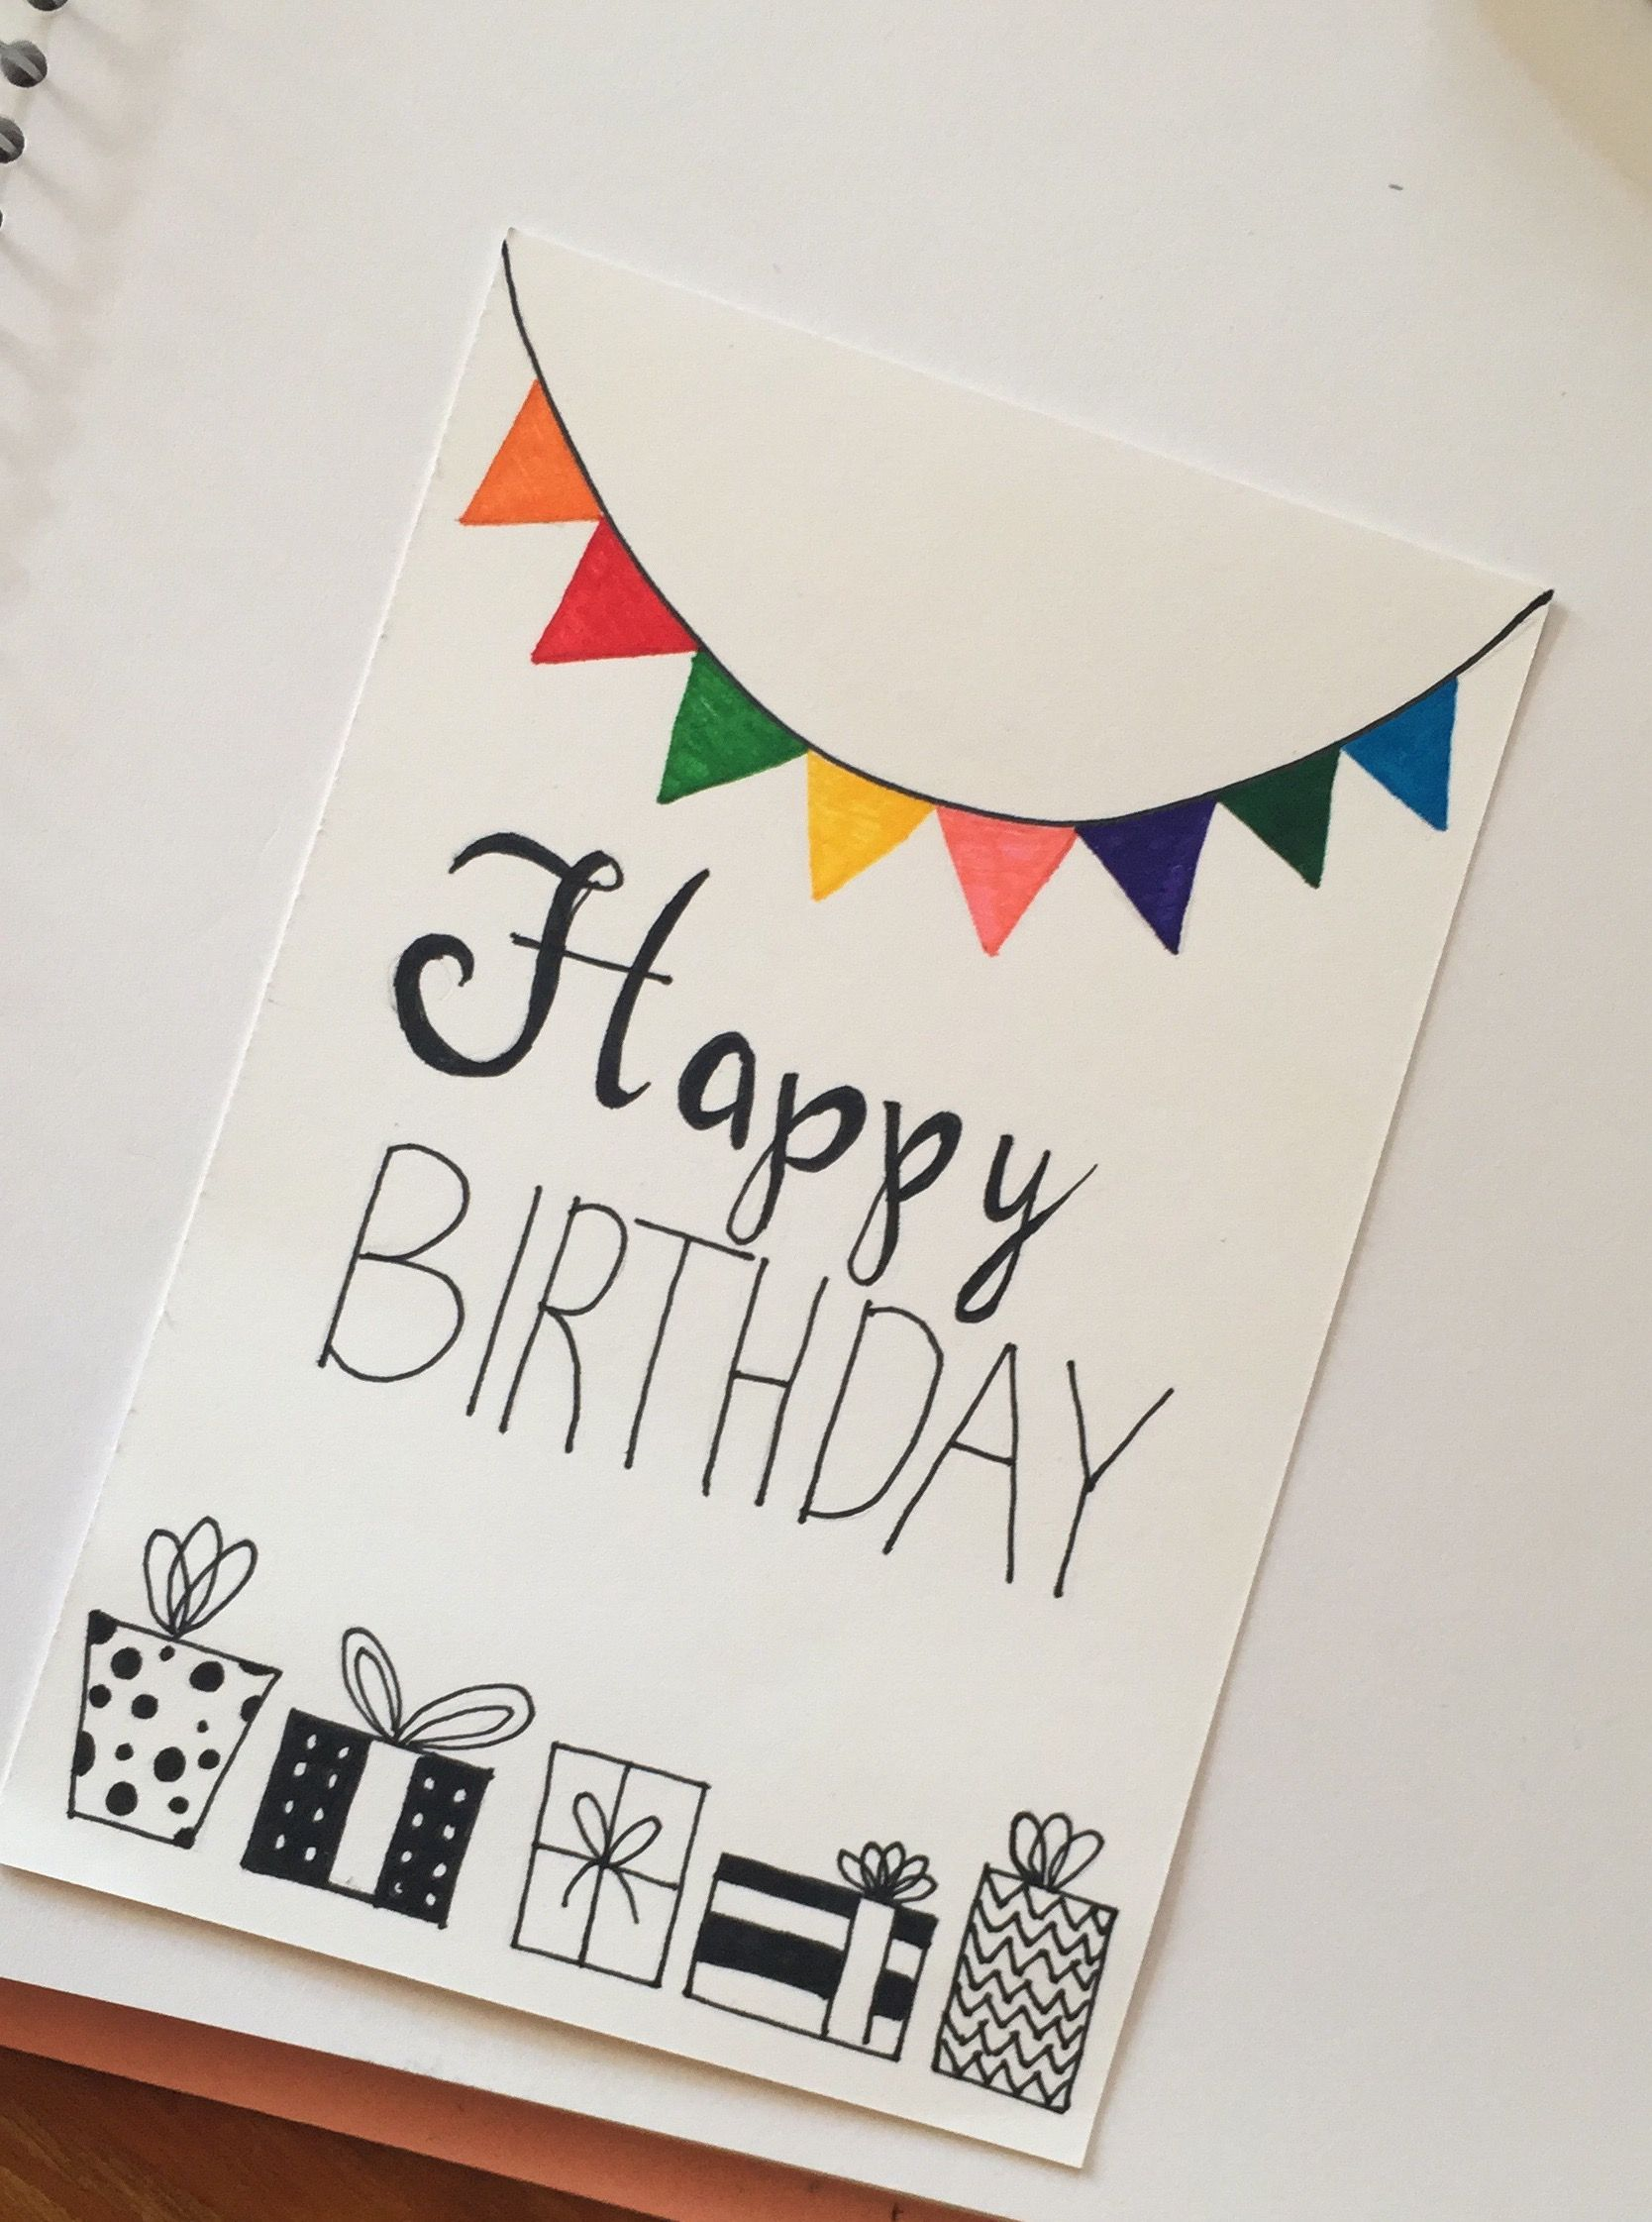 Happy birthday card birthday cards pinterest hand drawn happy handmade birthday card happy birthday m4hsunfo